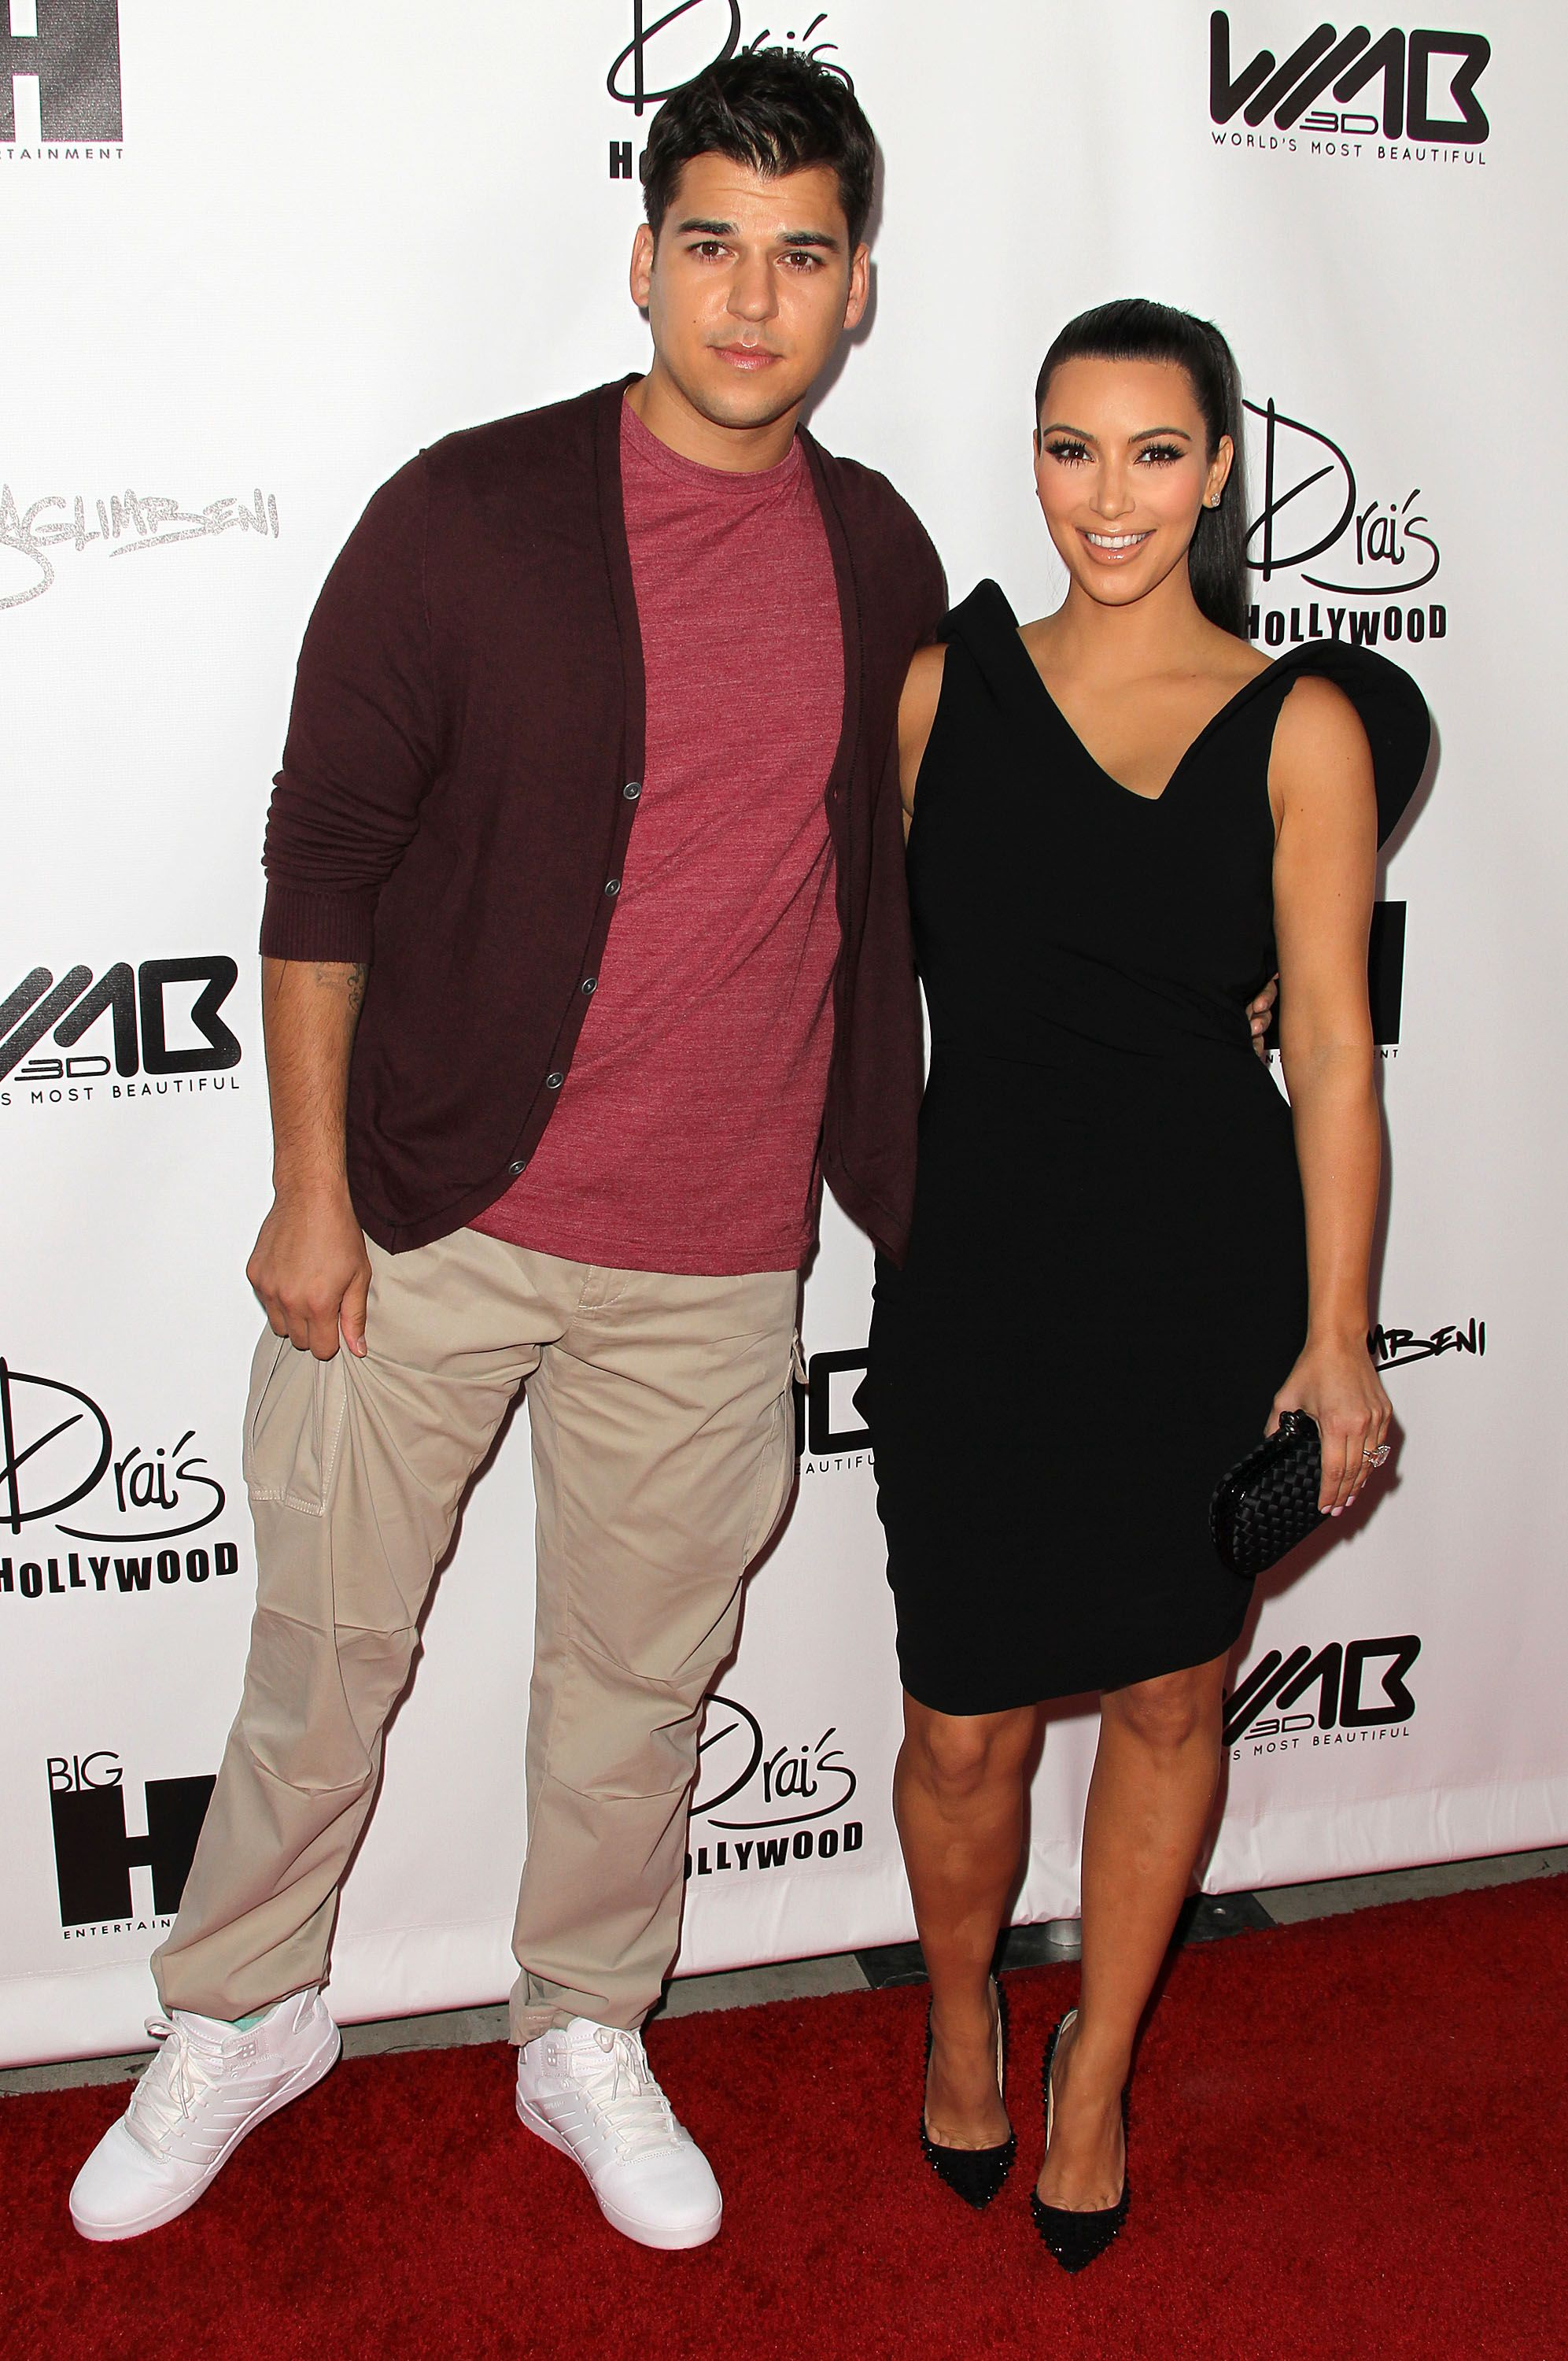 Rob Kardashian and Kim Kardashian during the World's Most Beautiful Magazine launch event at Drai's Hollywood on August 10, 2011 in Hollywood, California. | Source: Getty Images